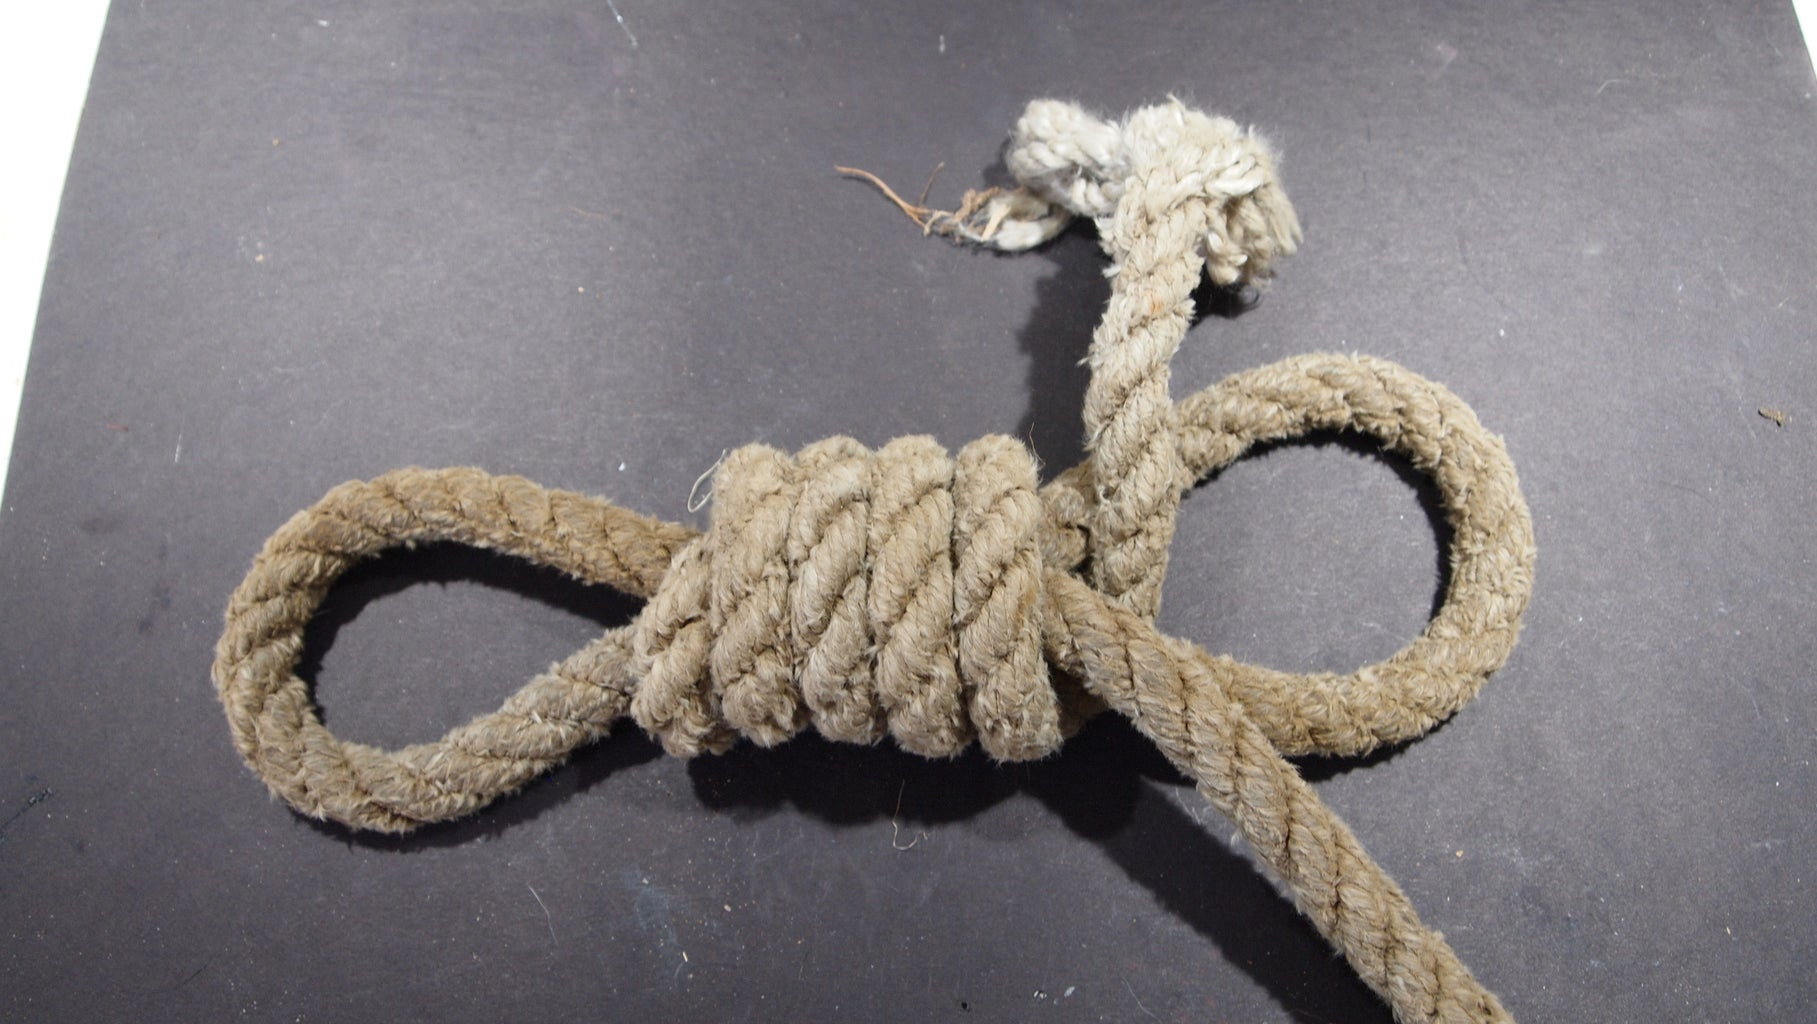 Rope-belt With Noose